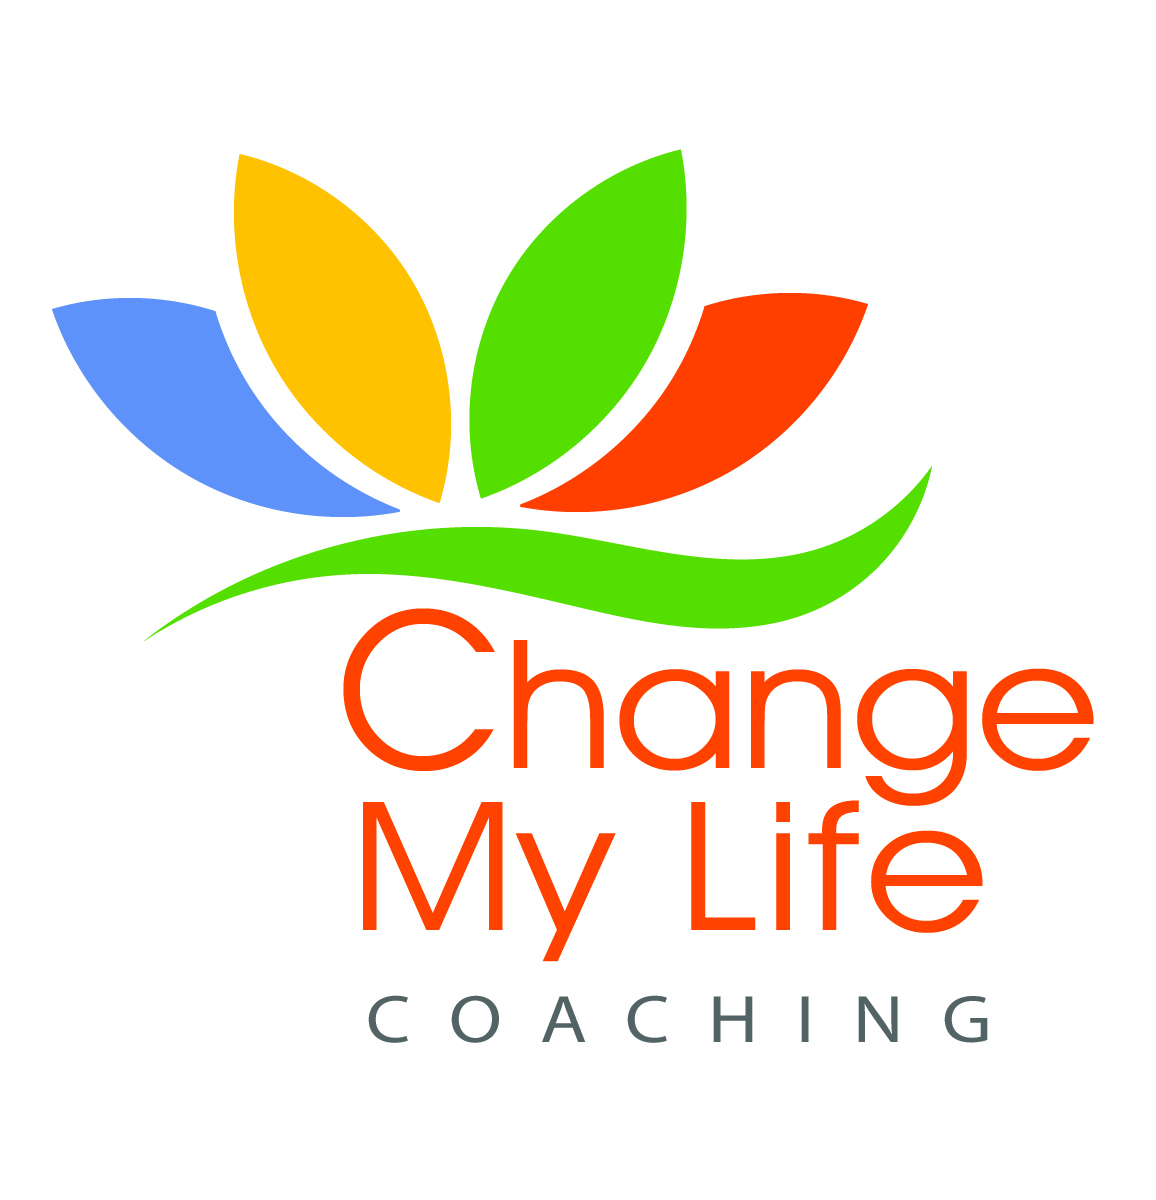 Change My Life Coaching